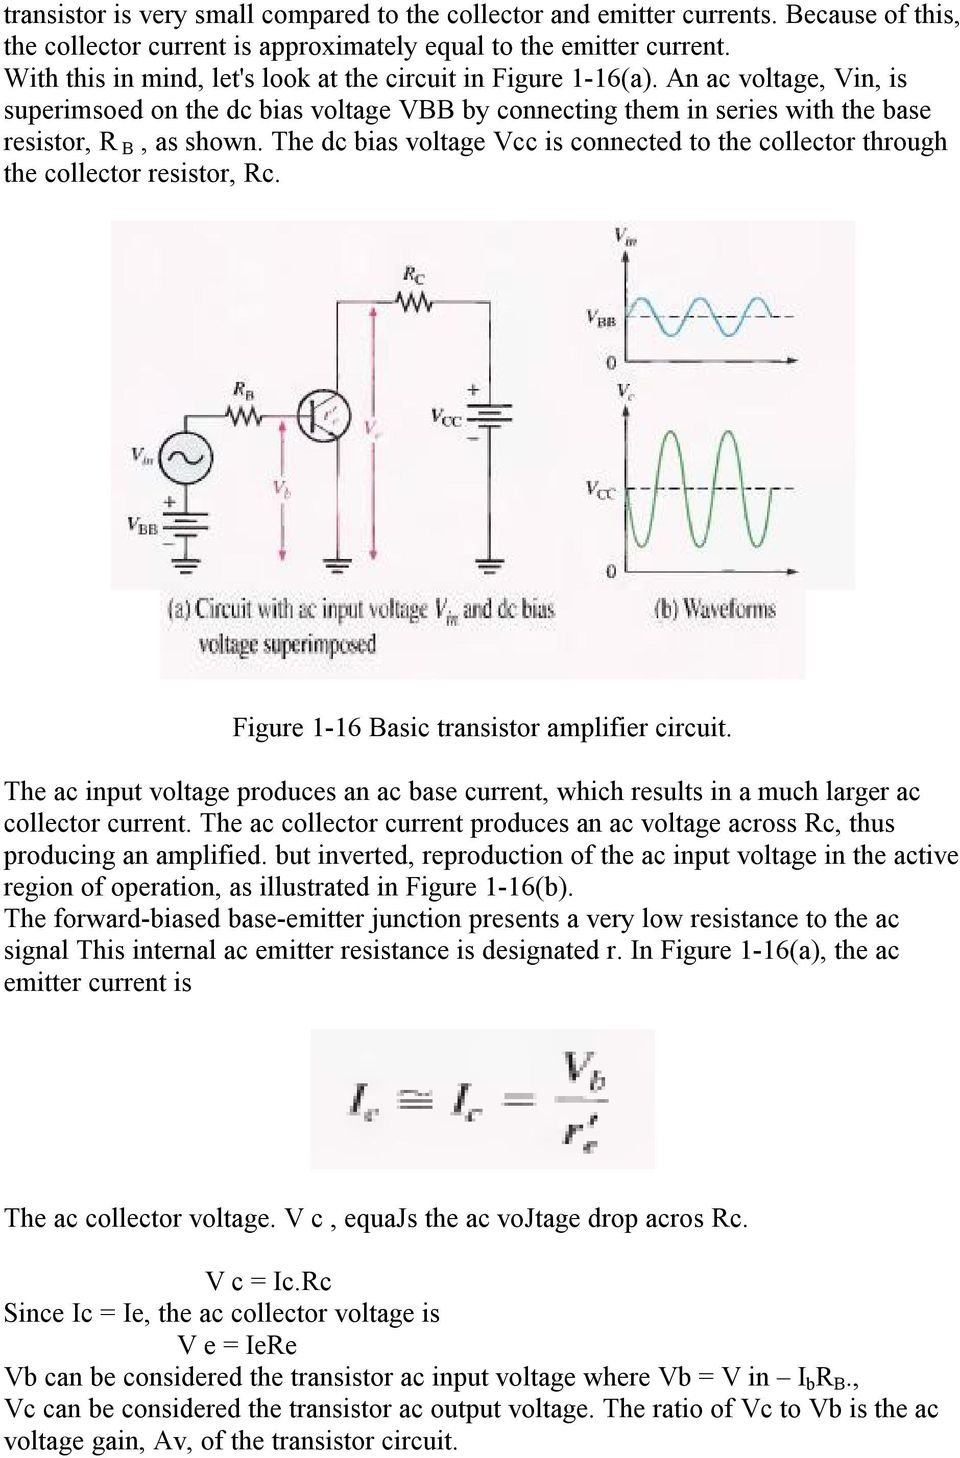 Chapter One Bipolar Junction Transistors Pdf Microwave Transistor Amplifier A Circuit Diagram B Schematic Design The Dc Bias Voltage Vcc Is Connected To Collector Through Resistor Rc